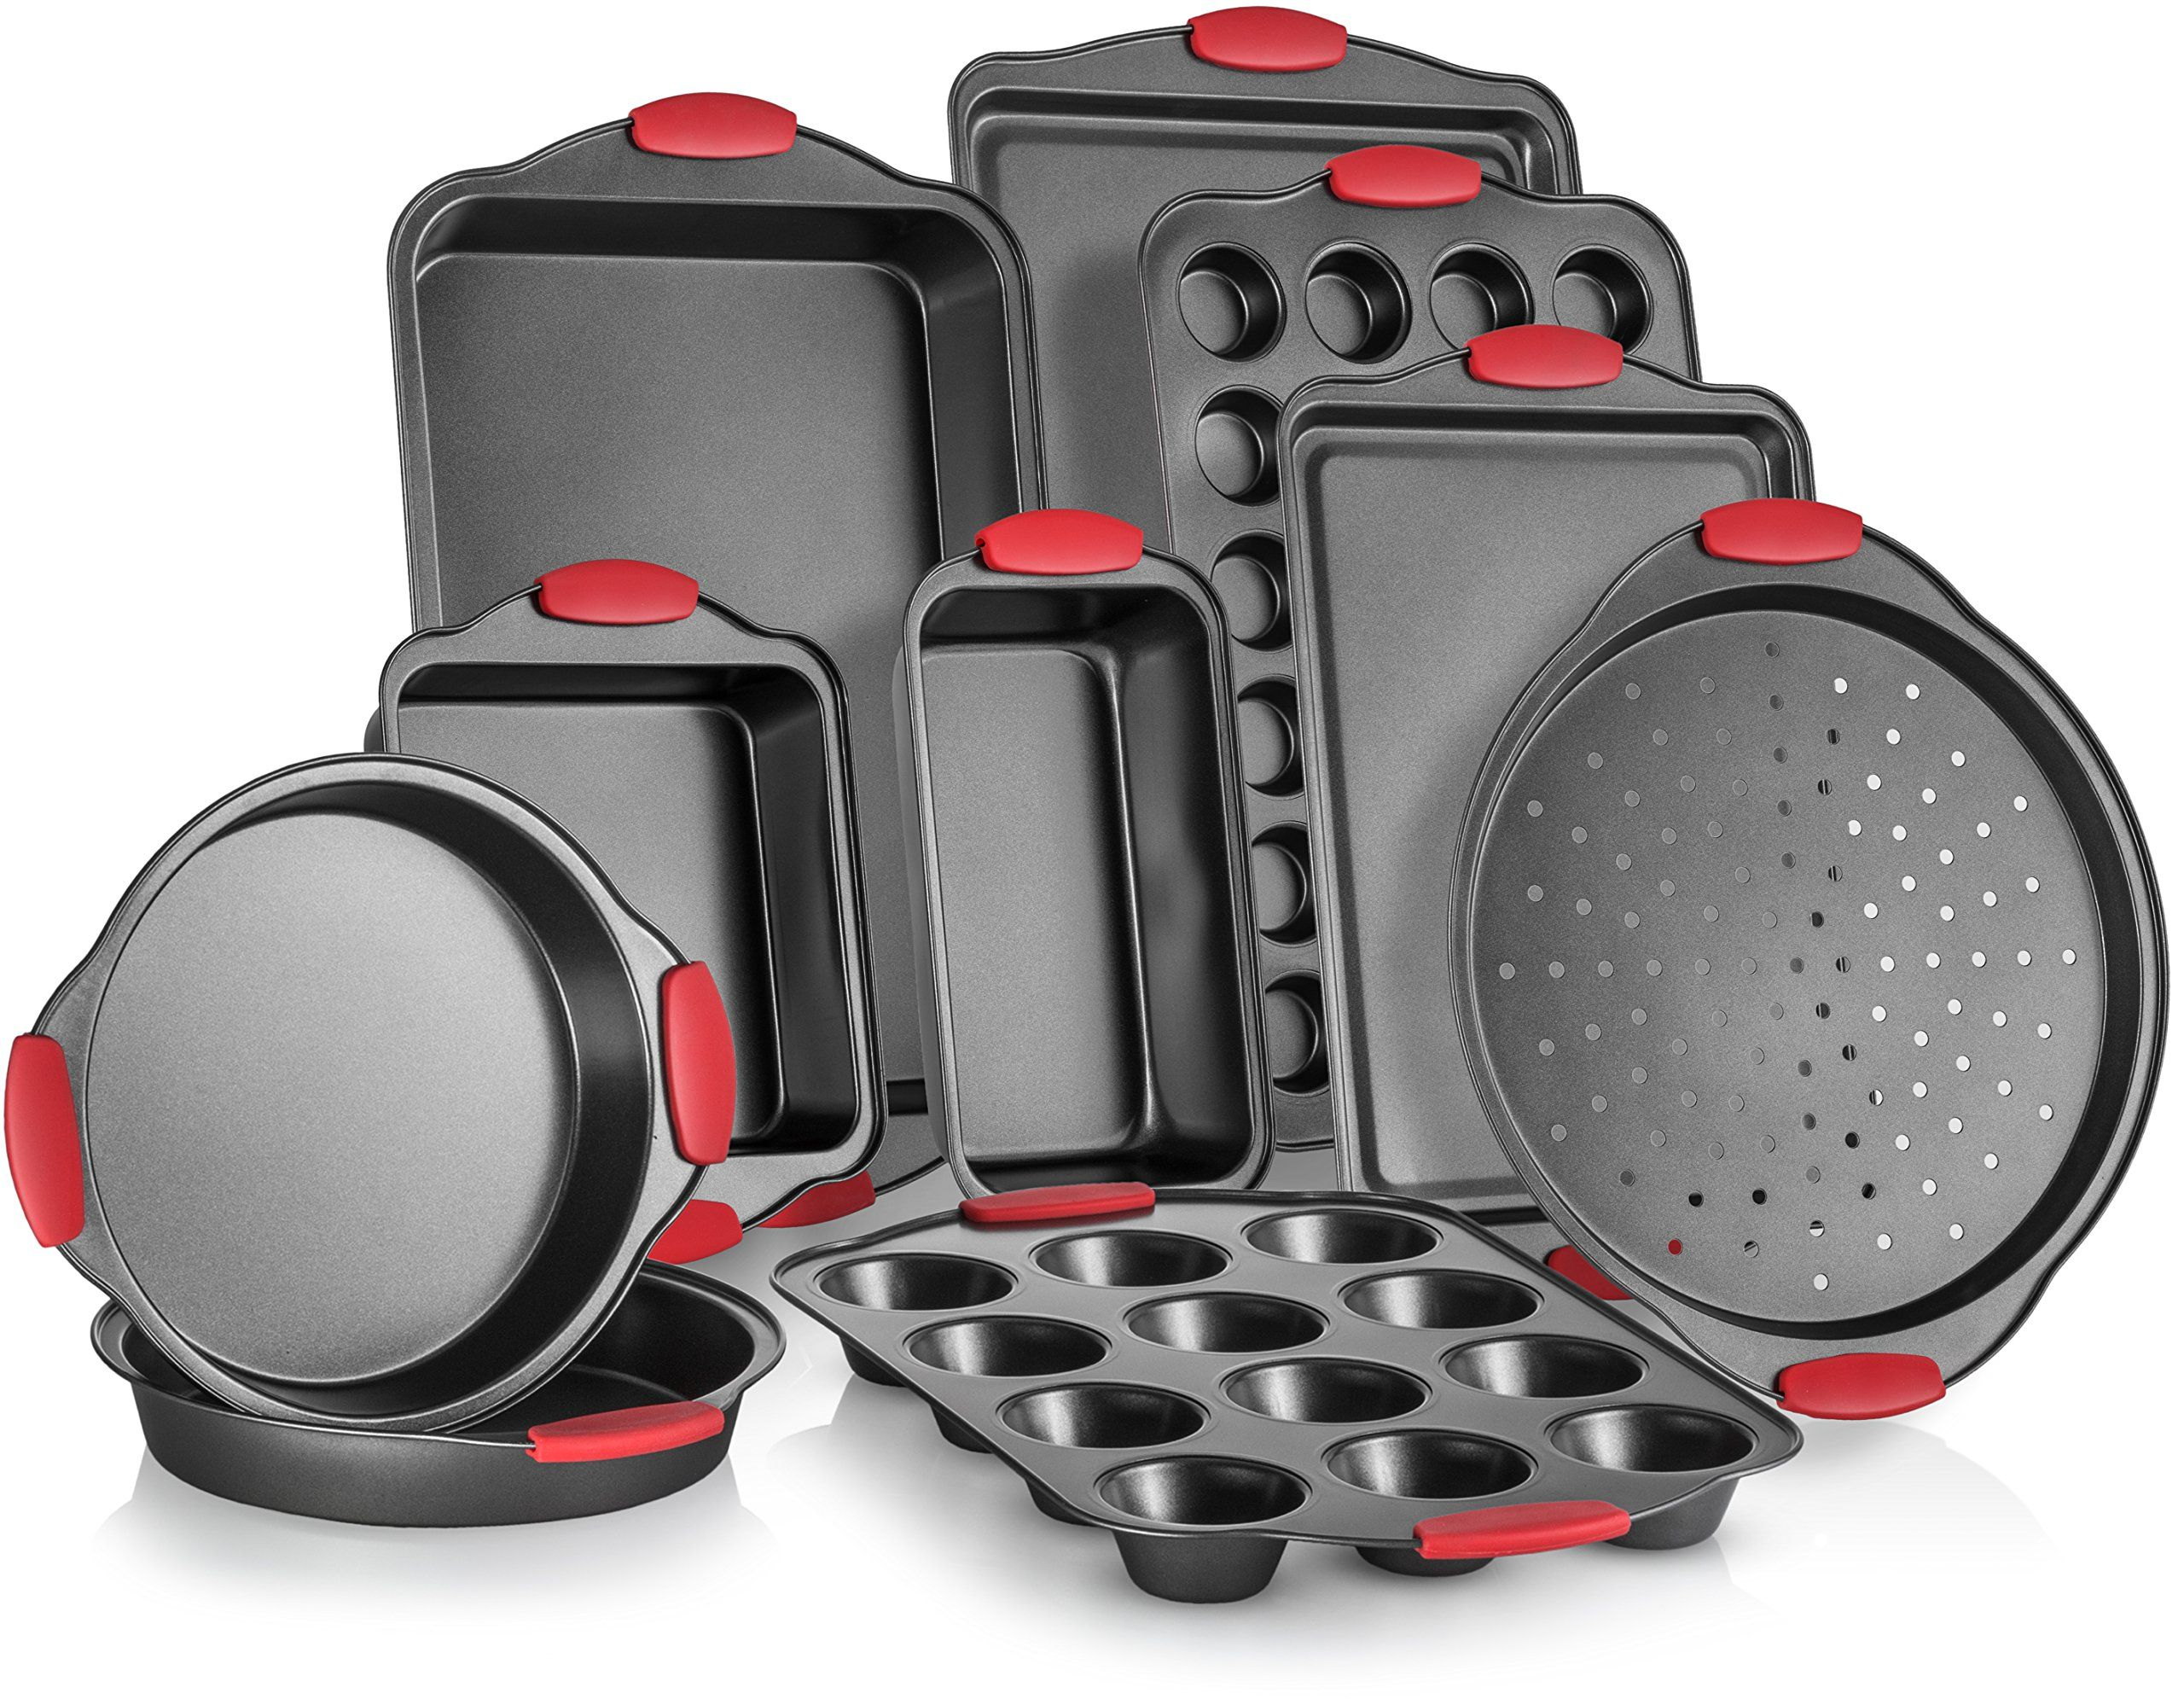 Perlli 10piece Nonstick Carbon Steel Bakeware Set With Red